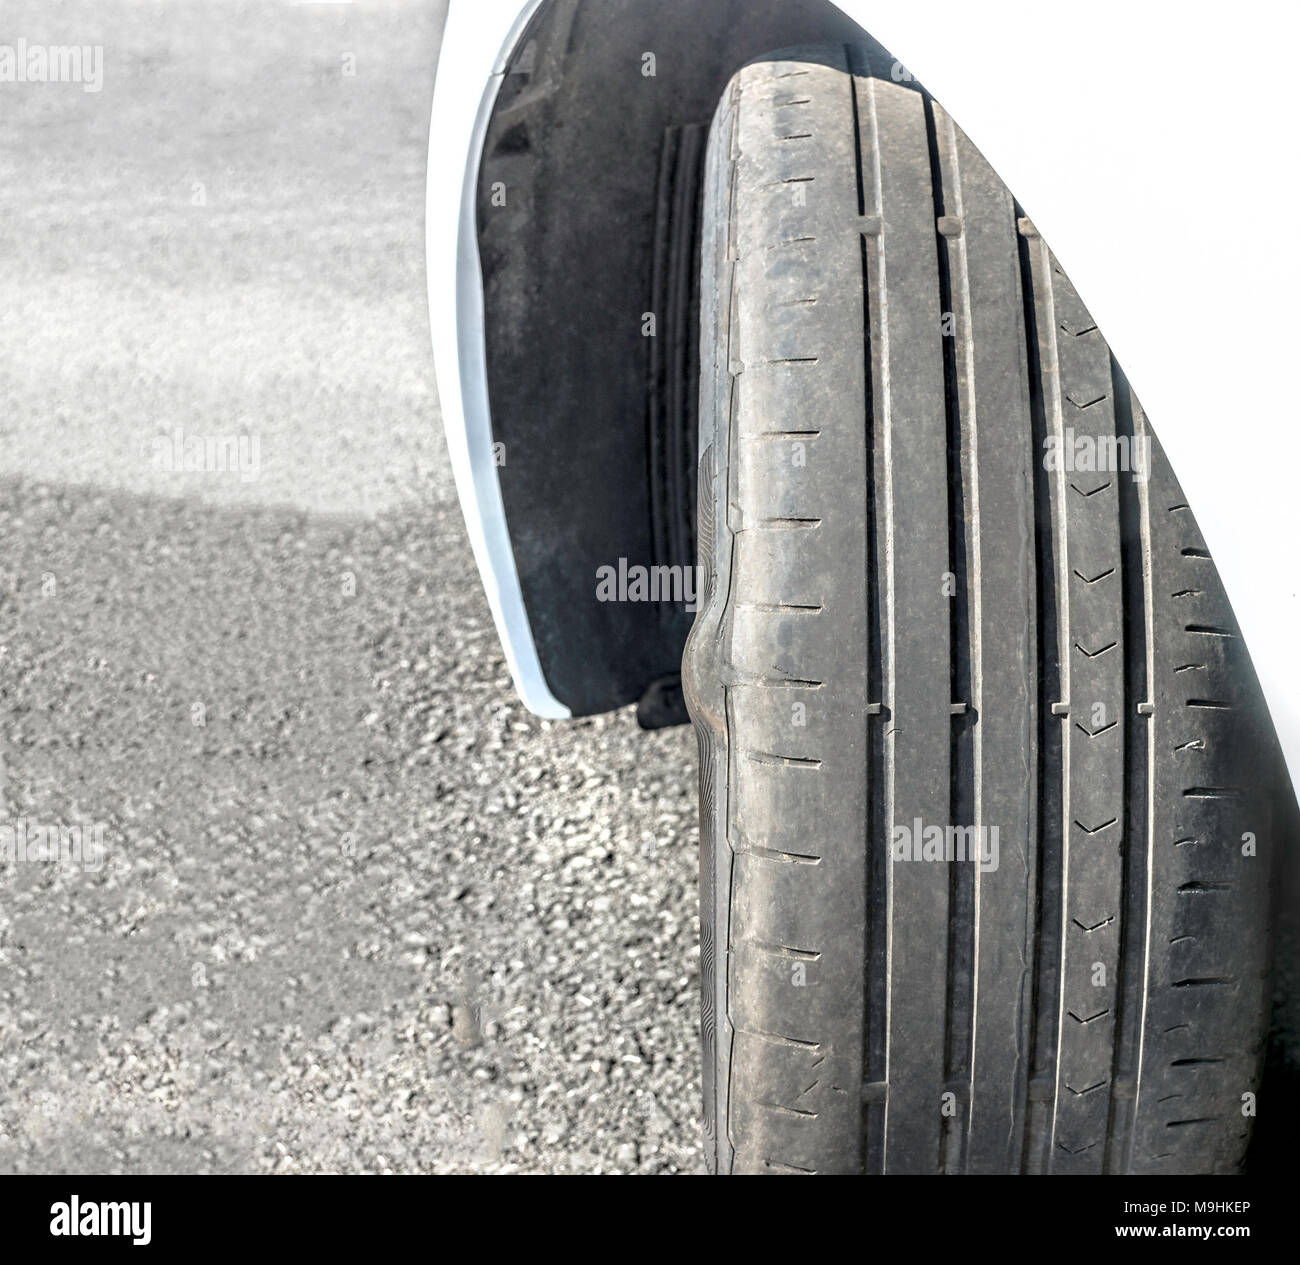 Badly worn out car tire tread and damaged bulb like side due to wear and tear or because of poor tracking or alignment of the wheels, dangerous. - Stock Image